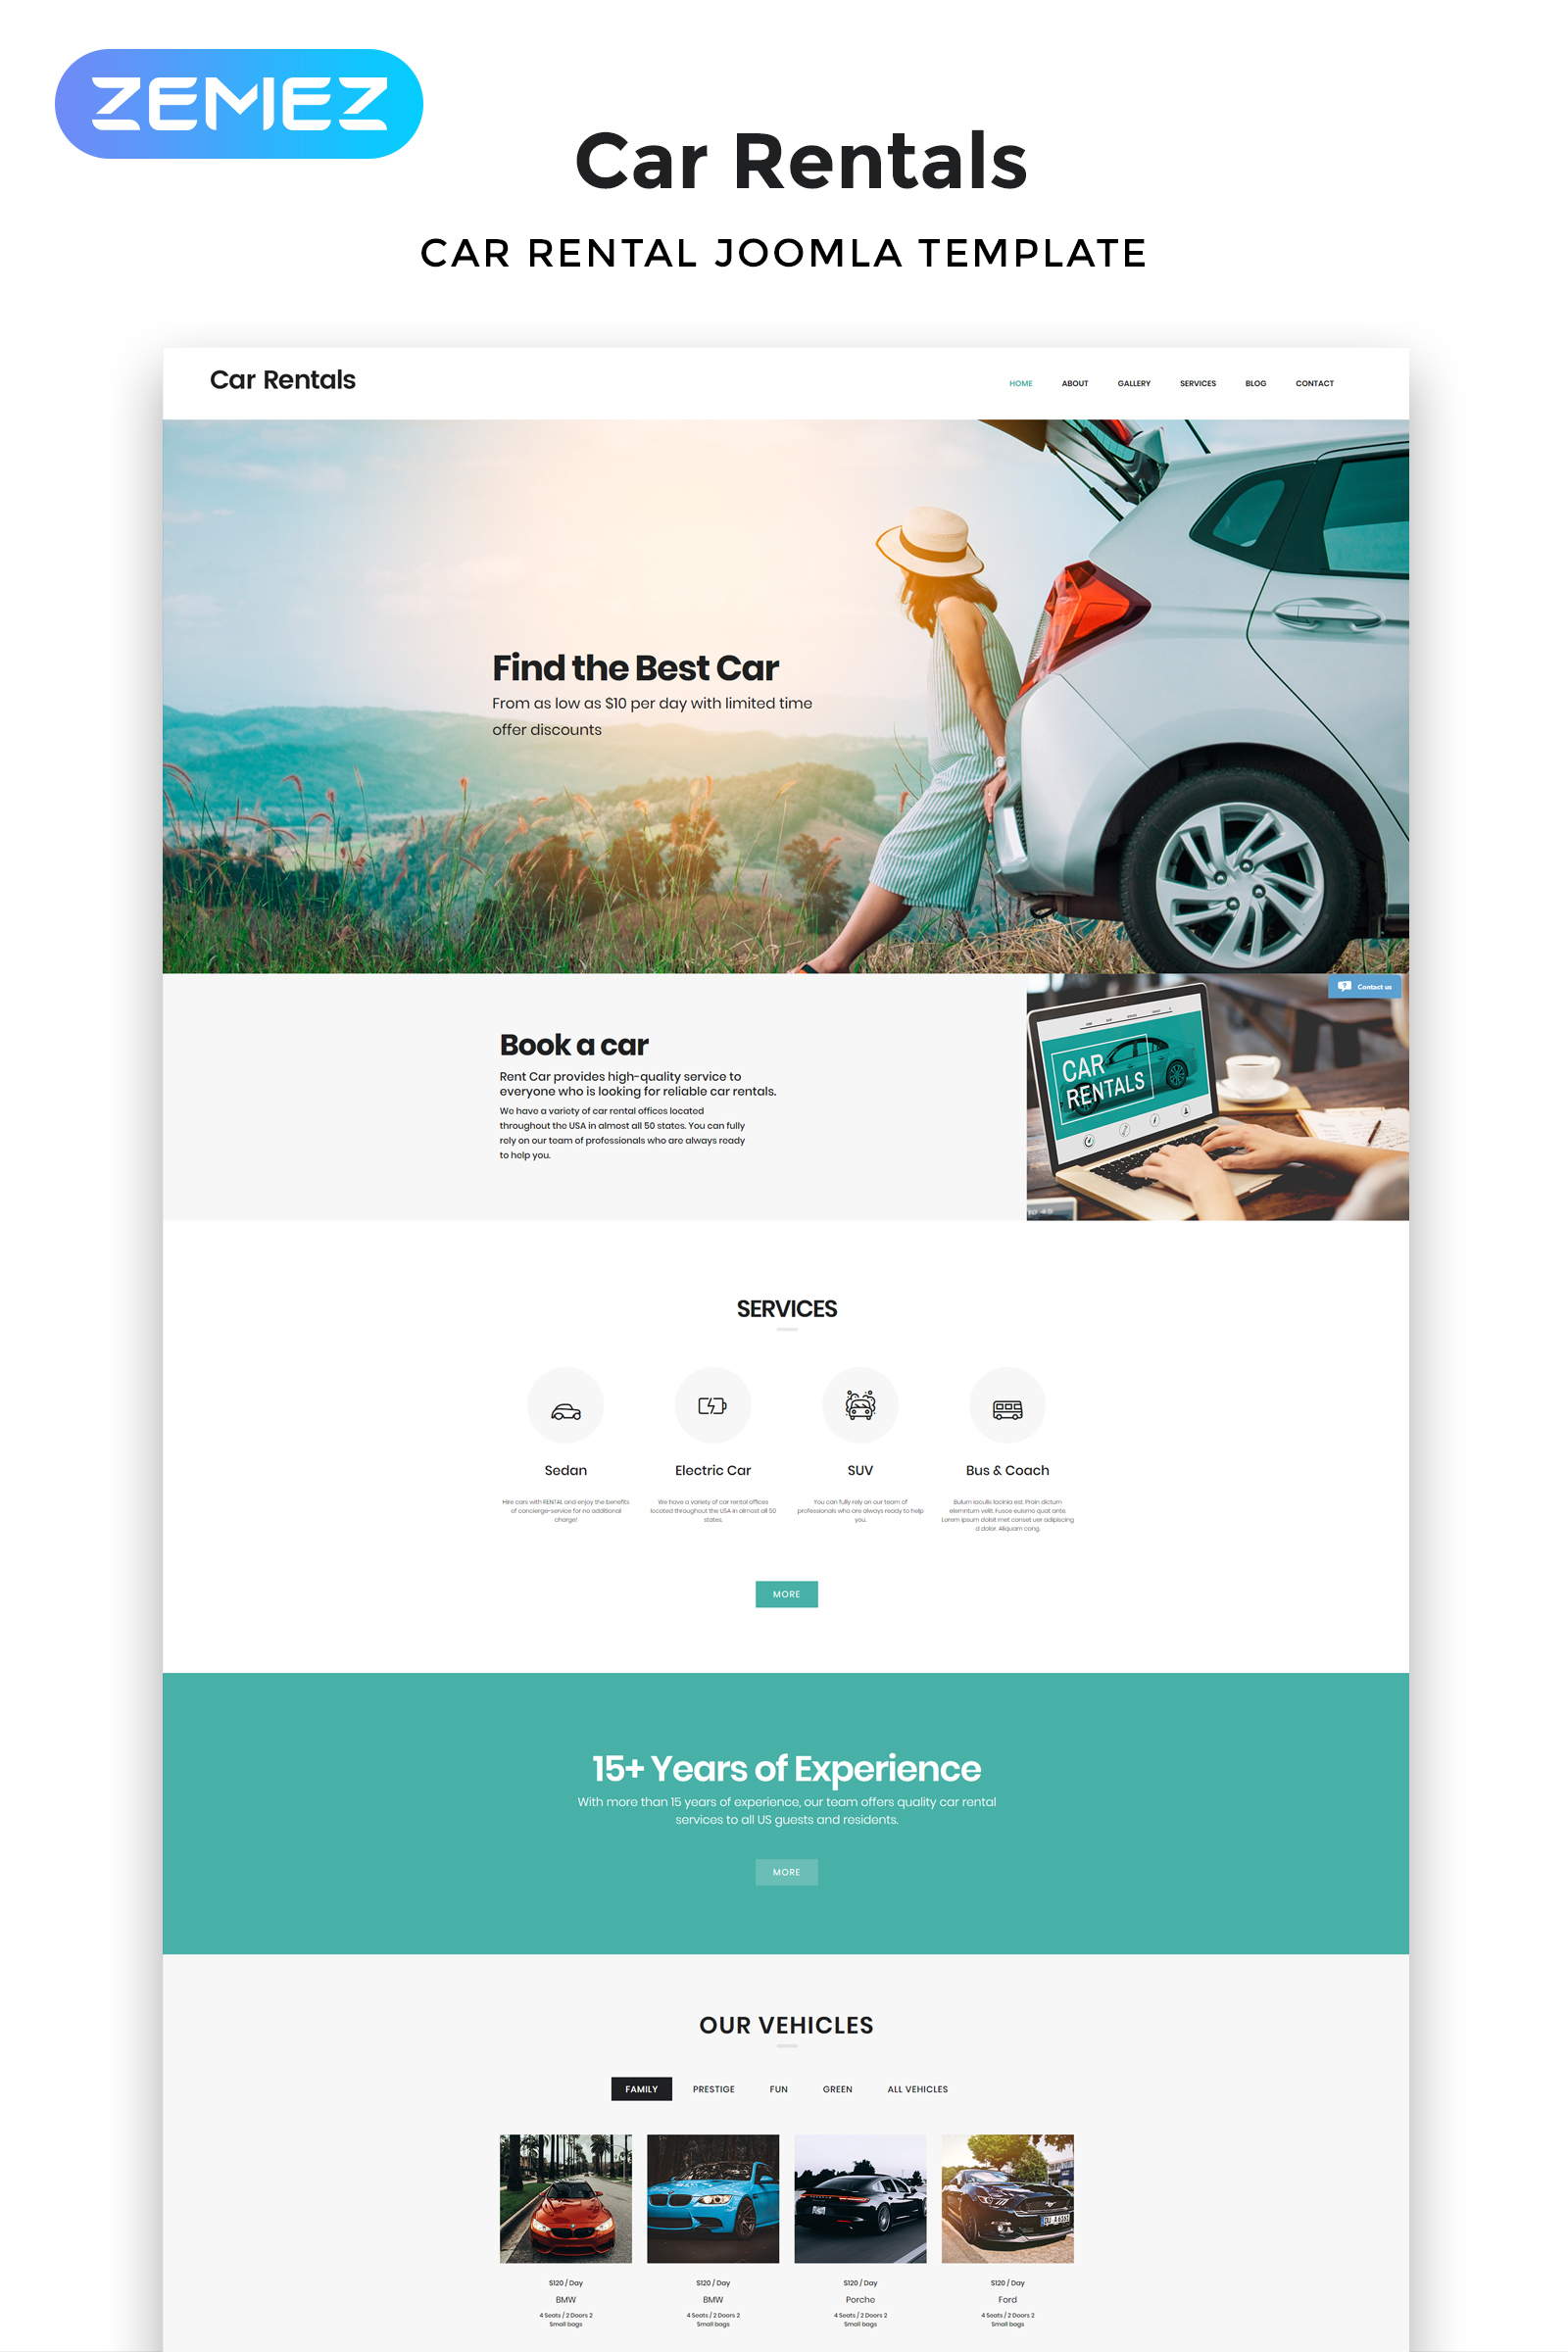 The Car Rental Joomla Design 53134, one of the best Joomla templates of its kind (cars, most popular), also known as car rental Joomla template, auto dealer Joomla template, improvement Joomla template, new Joomla template, used Joomla template, certified Joomla template, exhibition solution Joomla template, market Joomla template, research Joomla template, vendor Joomla template, motor Joomla template, price Joomla template, Lexus transport Joomla template, speed Joomla template, jeep Joomla template, ford Joomla template, Audi Volvo Mercedes driving Joomla template, off-road Joomla template, racing Joomla template, driver Joomla template, track Joomla template, race Joomla template, urban Joomla template, freeway Joomla template, highway Joomla template, road Joomla template, vehicle Joomla template, Porsche BMW spar and related with car rental, auto dealer, improvement, new, used, certified, exhibition solution, market, research, vendor, motor, price, Lexus transport, speed, jeep, ford, Audi Volvo Mercedes driving, off-road, racing, driver, track, race, urban, freeway, highway, road, vehicle, Porsche BMW spar, etc.